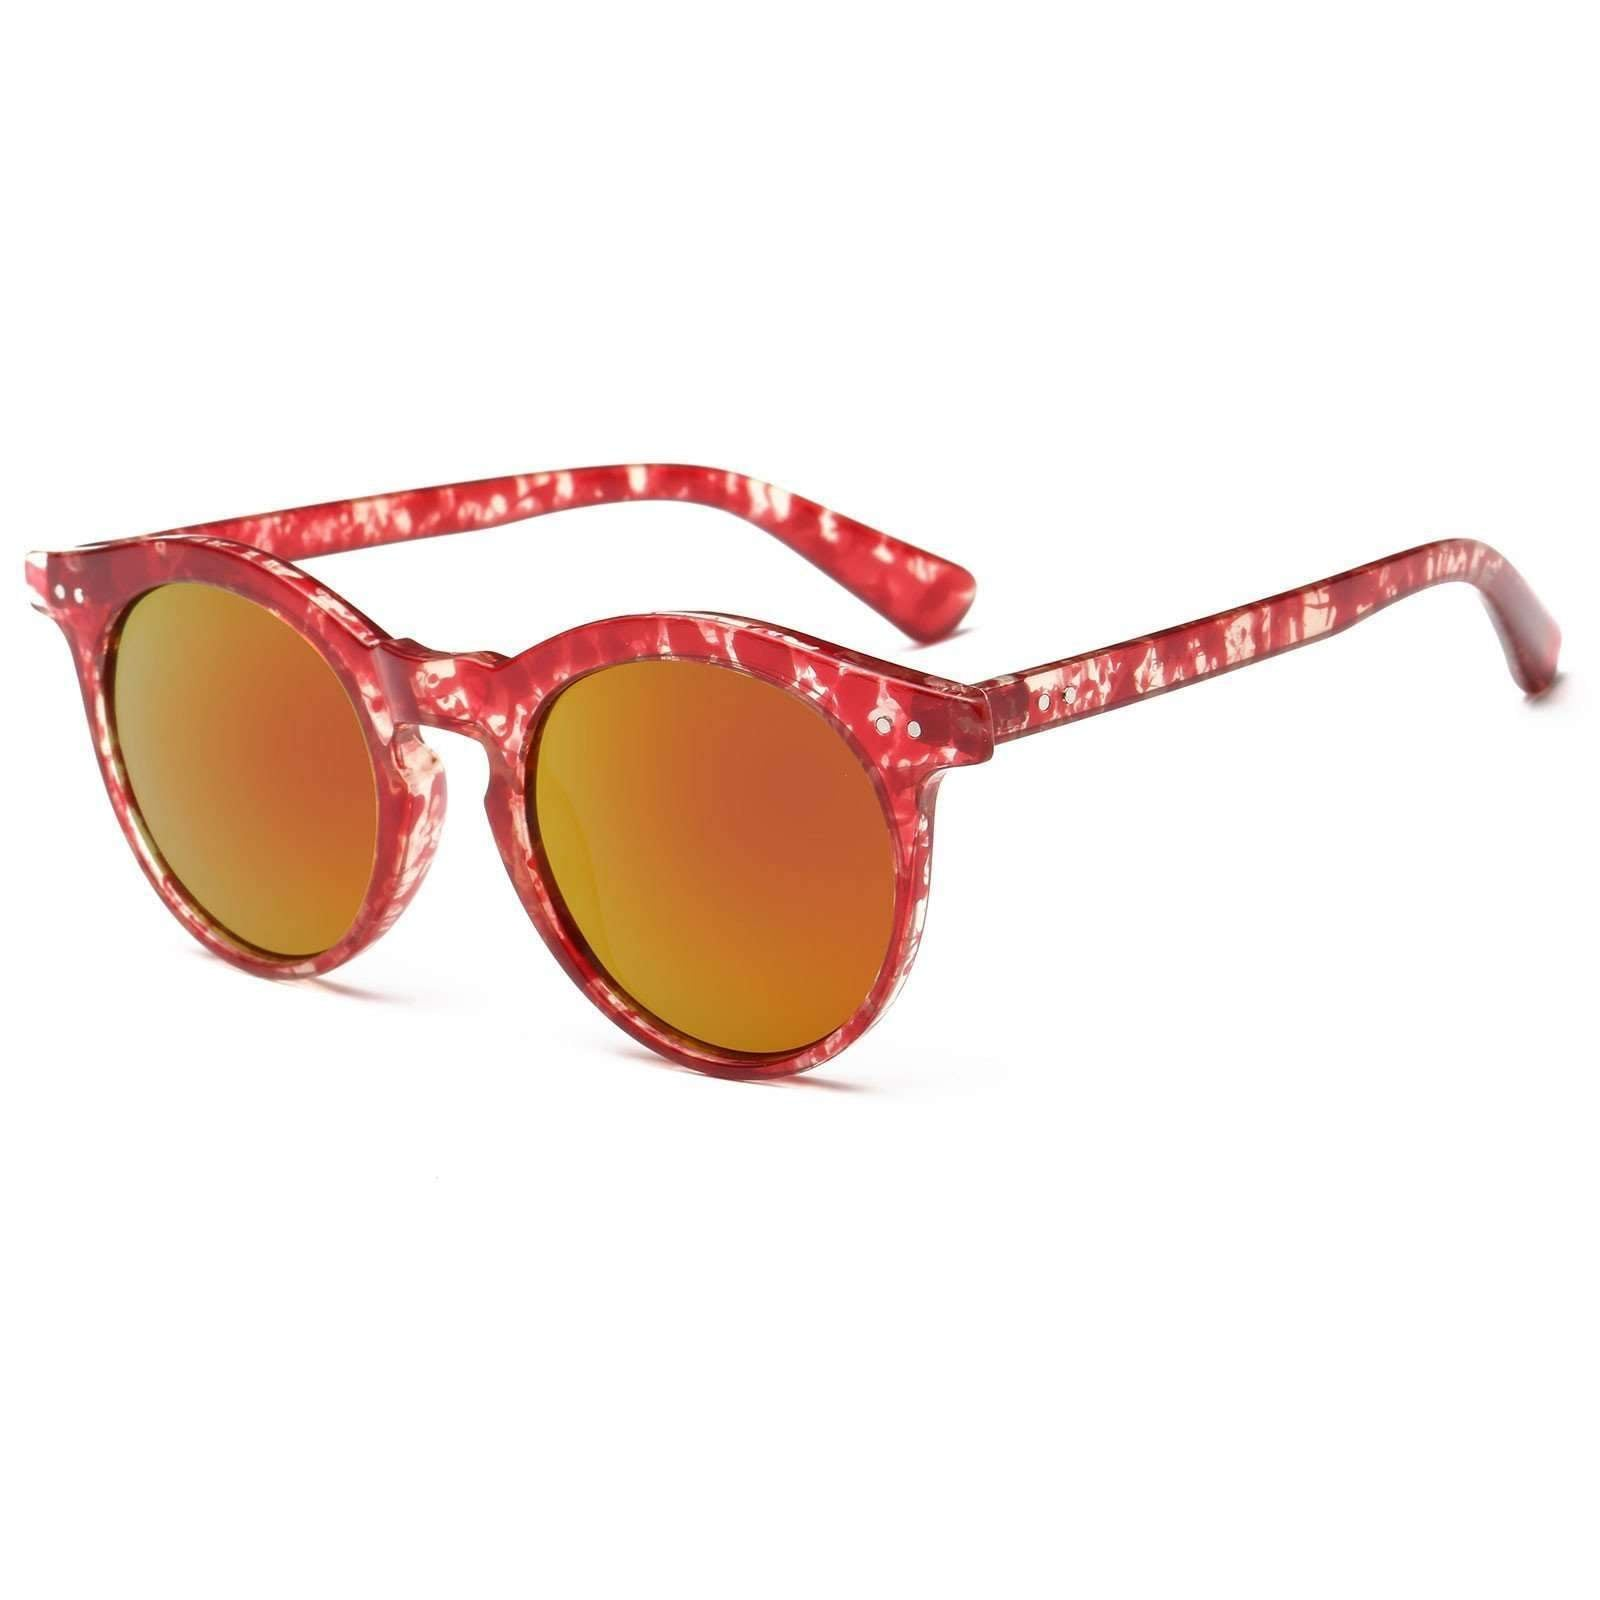 7055 - Chic Oversized Mirrored Keyhole Sunglasses